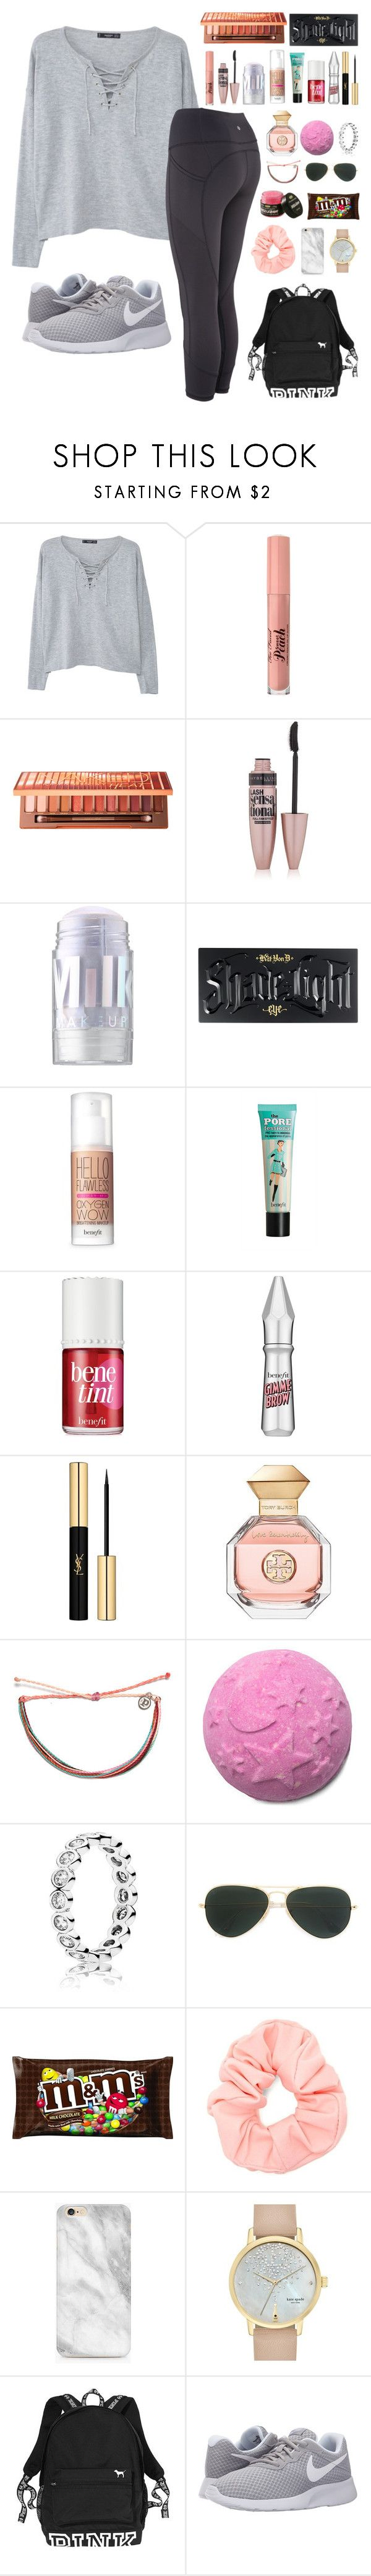 """""""Untitled #116"""" by laurenek006 ❤ liked on Polyvore featuring MANGO, Too Faced Cosmetics, Urban Decay, Maybelline, MILK MAKEUP, Kat Von D, Benefit, Yves Saint Laurent, Tory Burch and Pura Vida"""